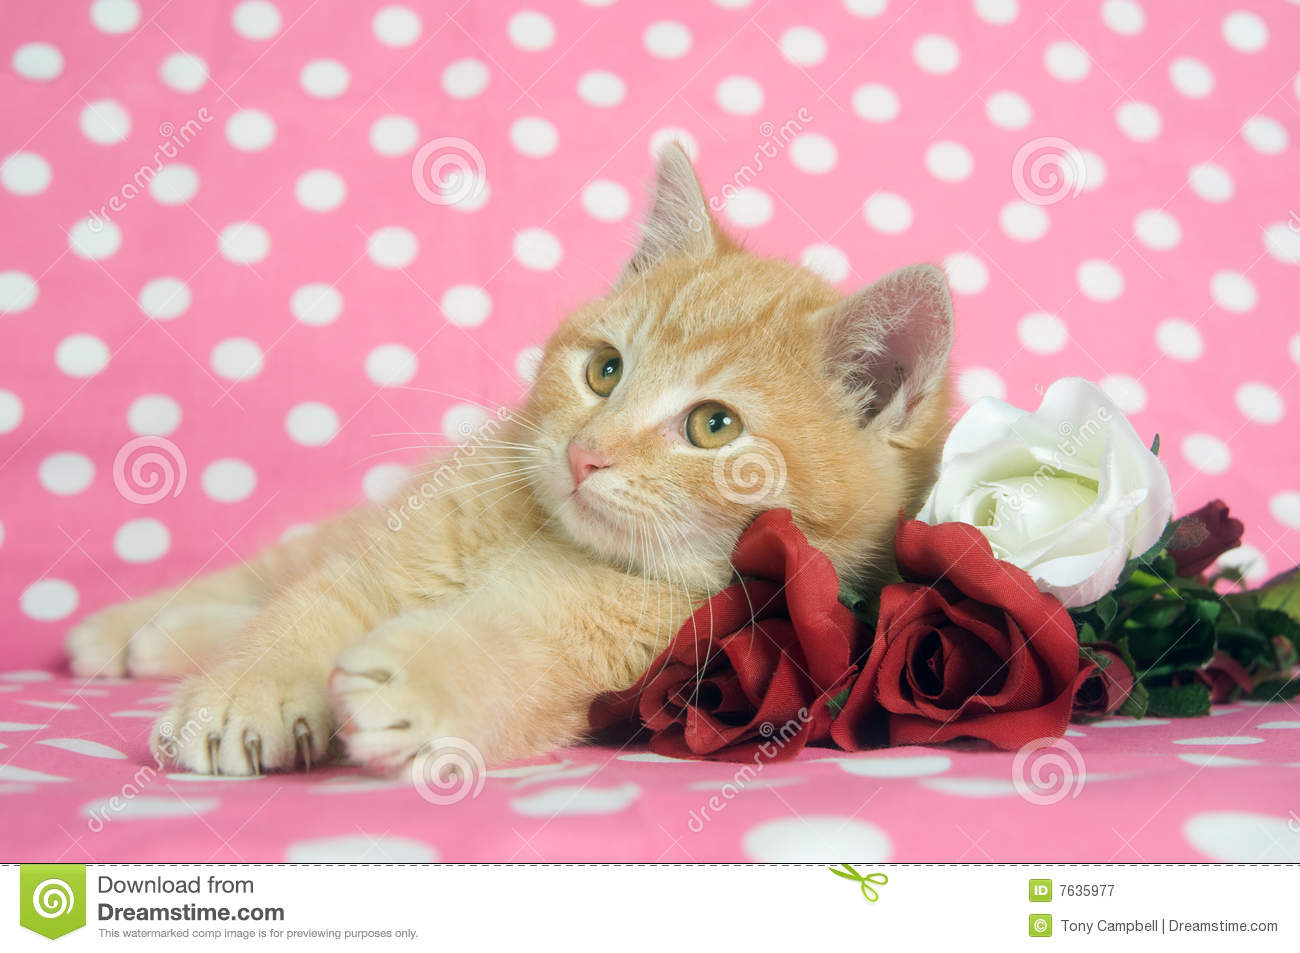 Kittens And Roses For Valentines Day Stock Image Image Of Rest